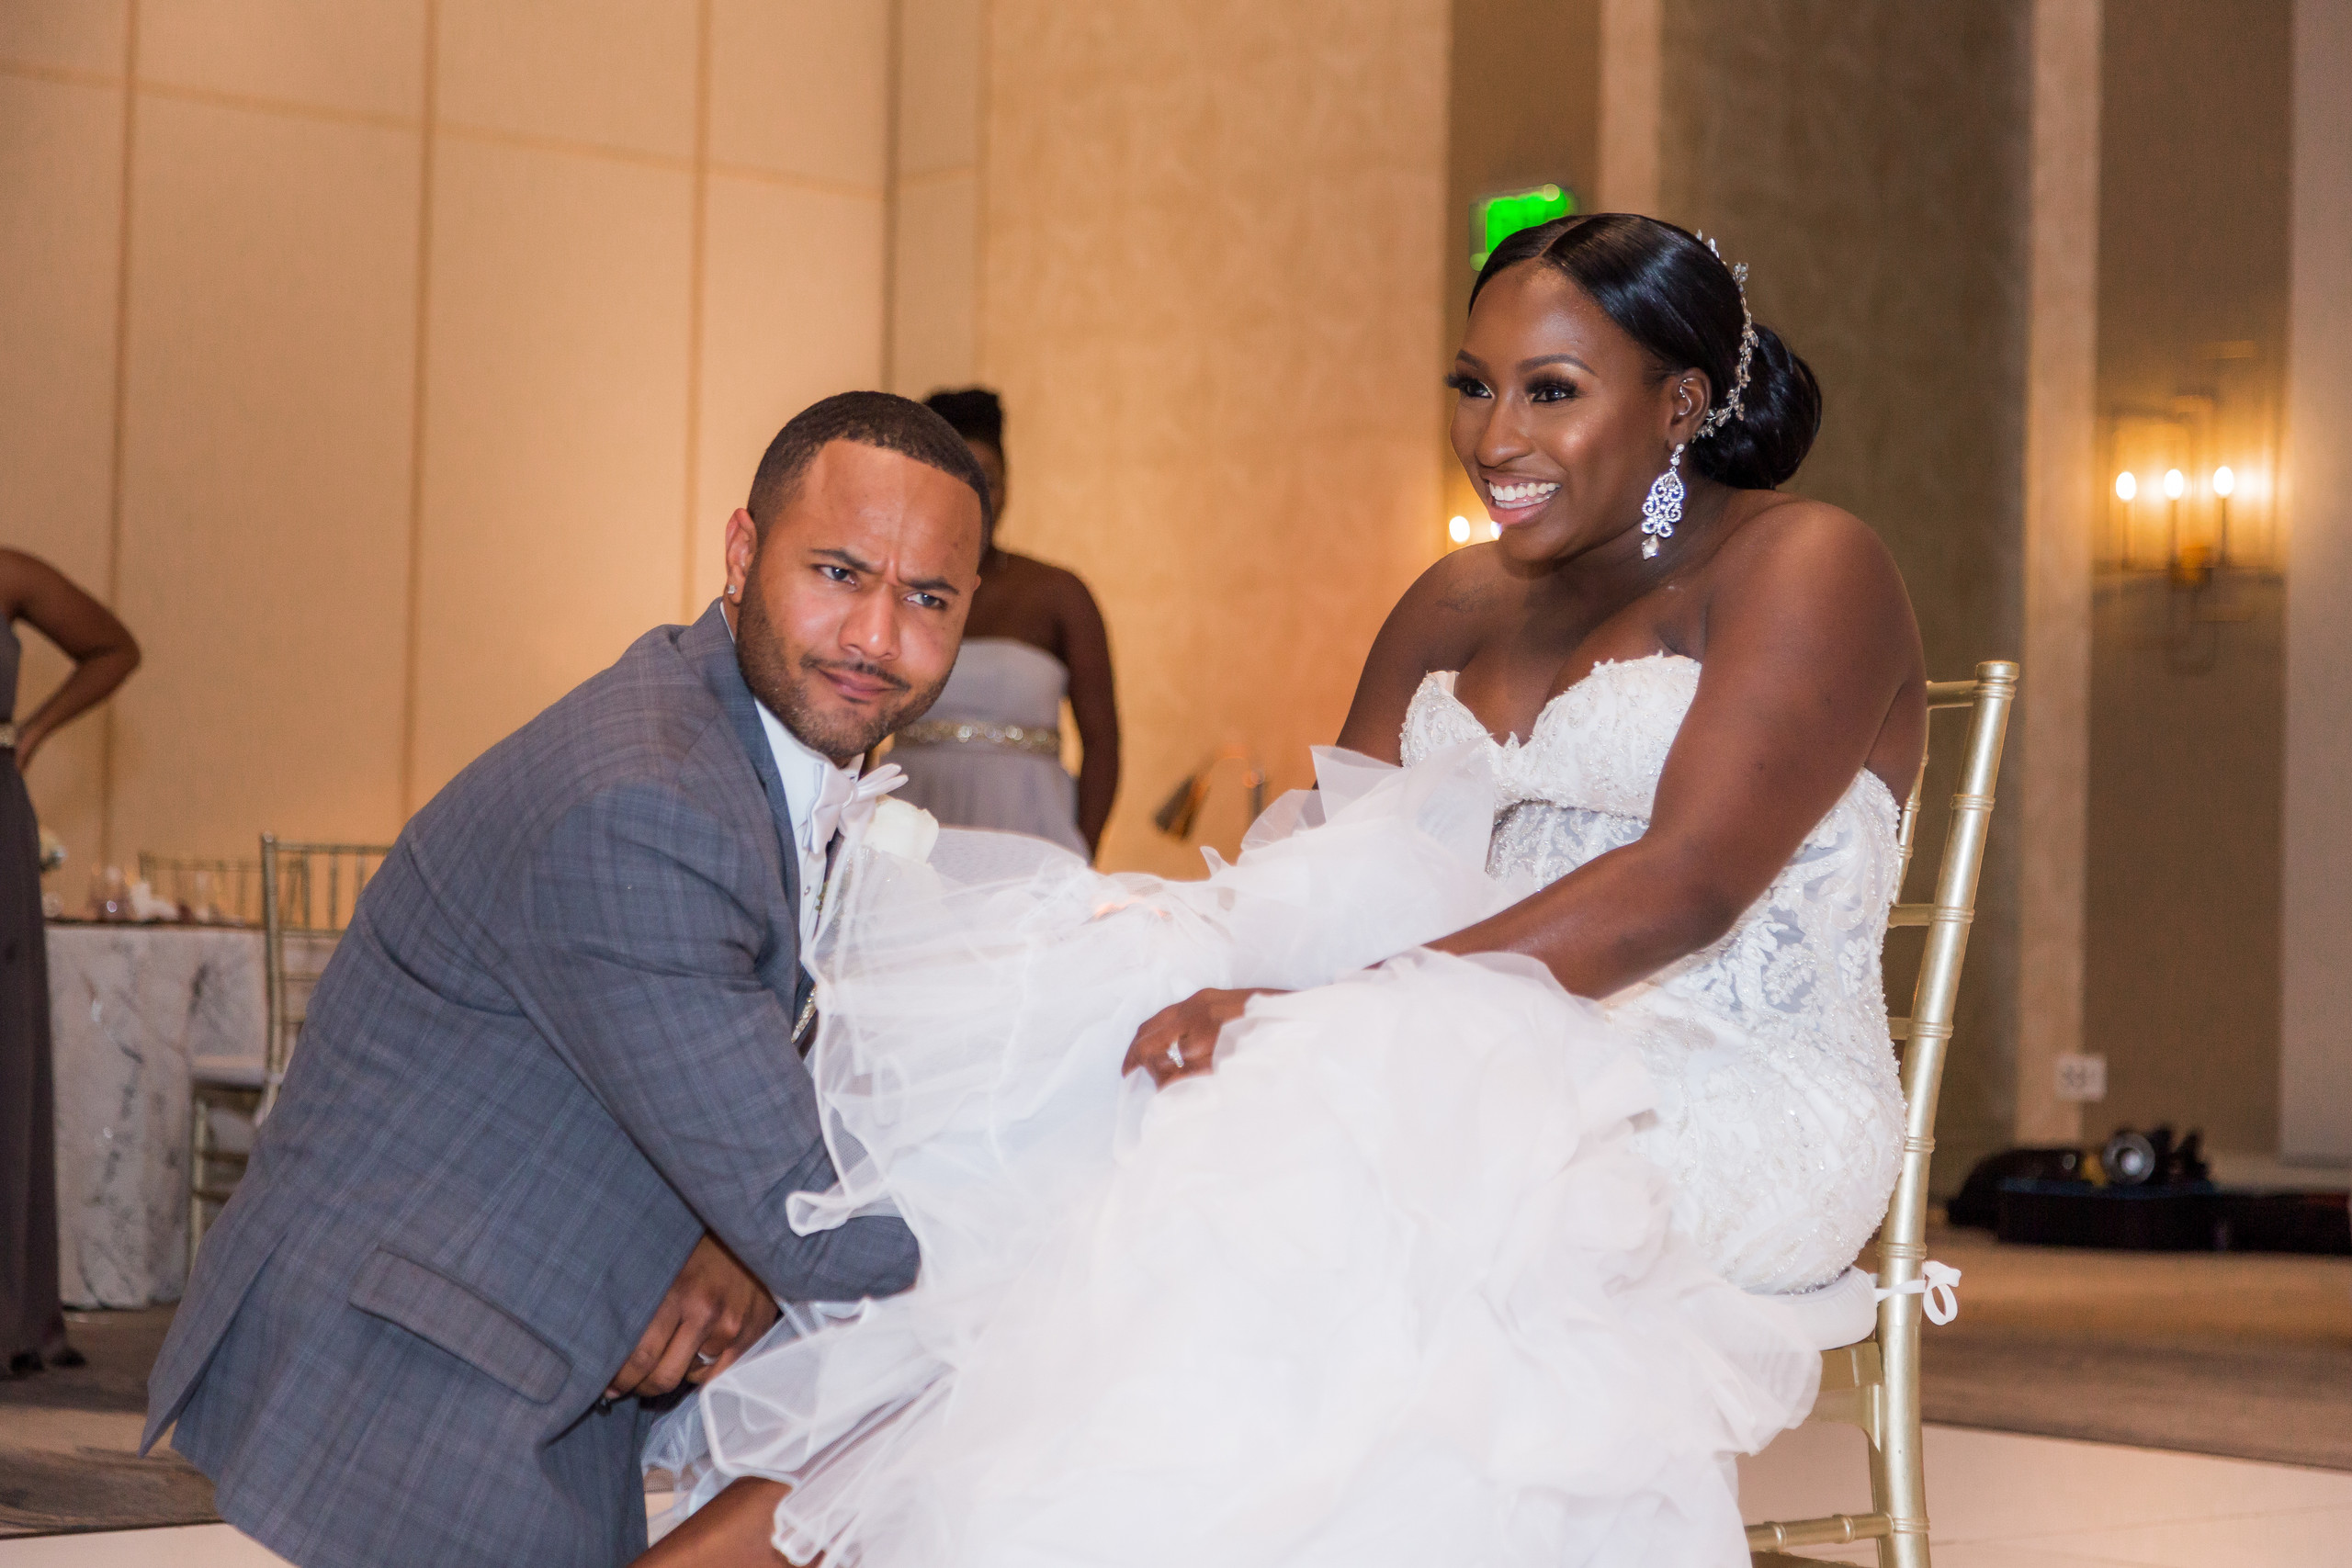 The groom retrieving the bride's garter during the wedding reception at the Hilton Main in Norfolk, Virginia.